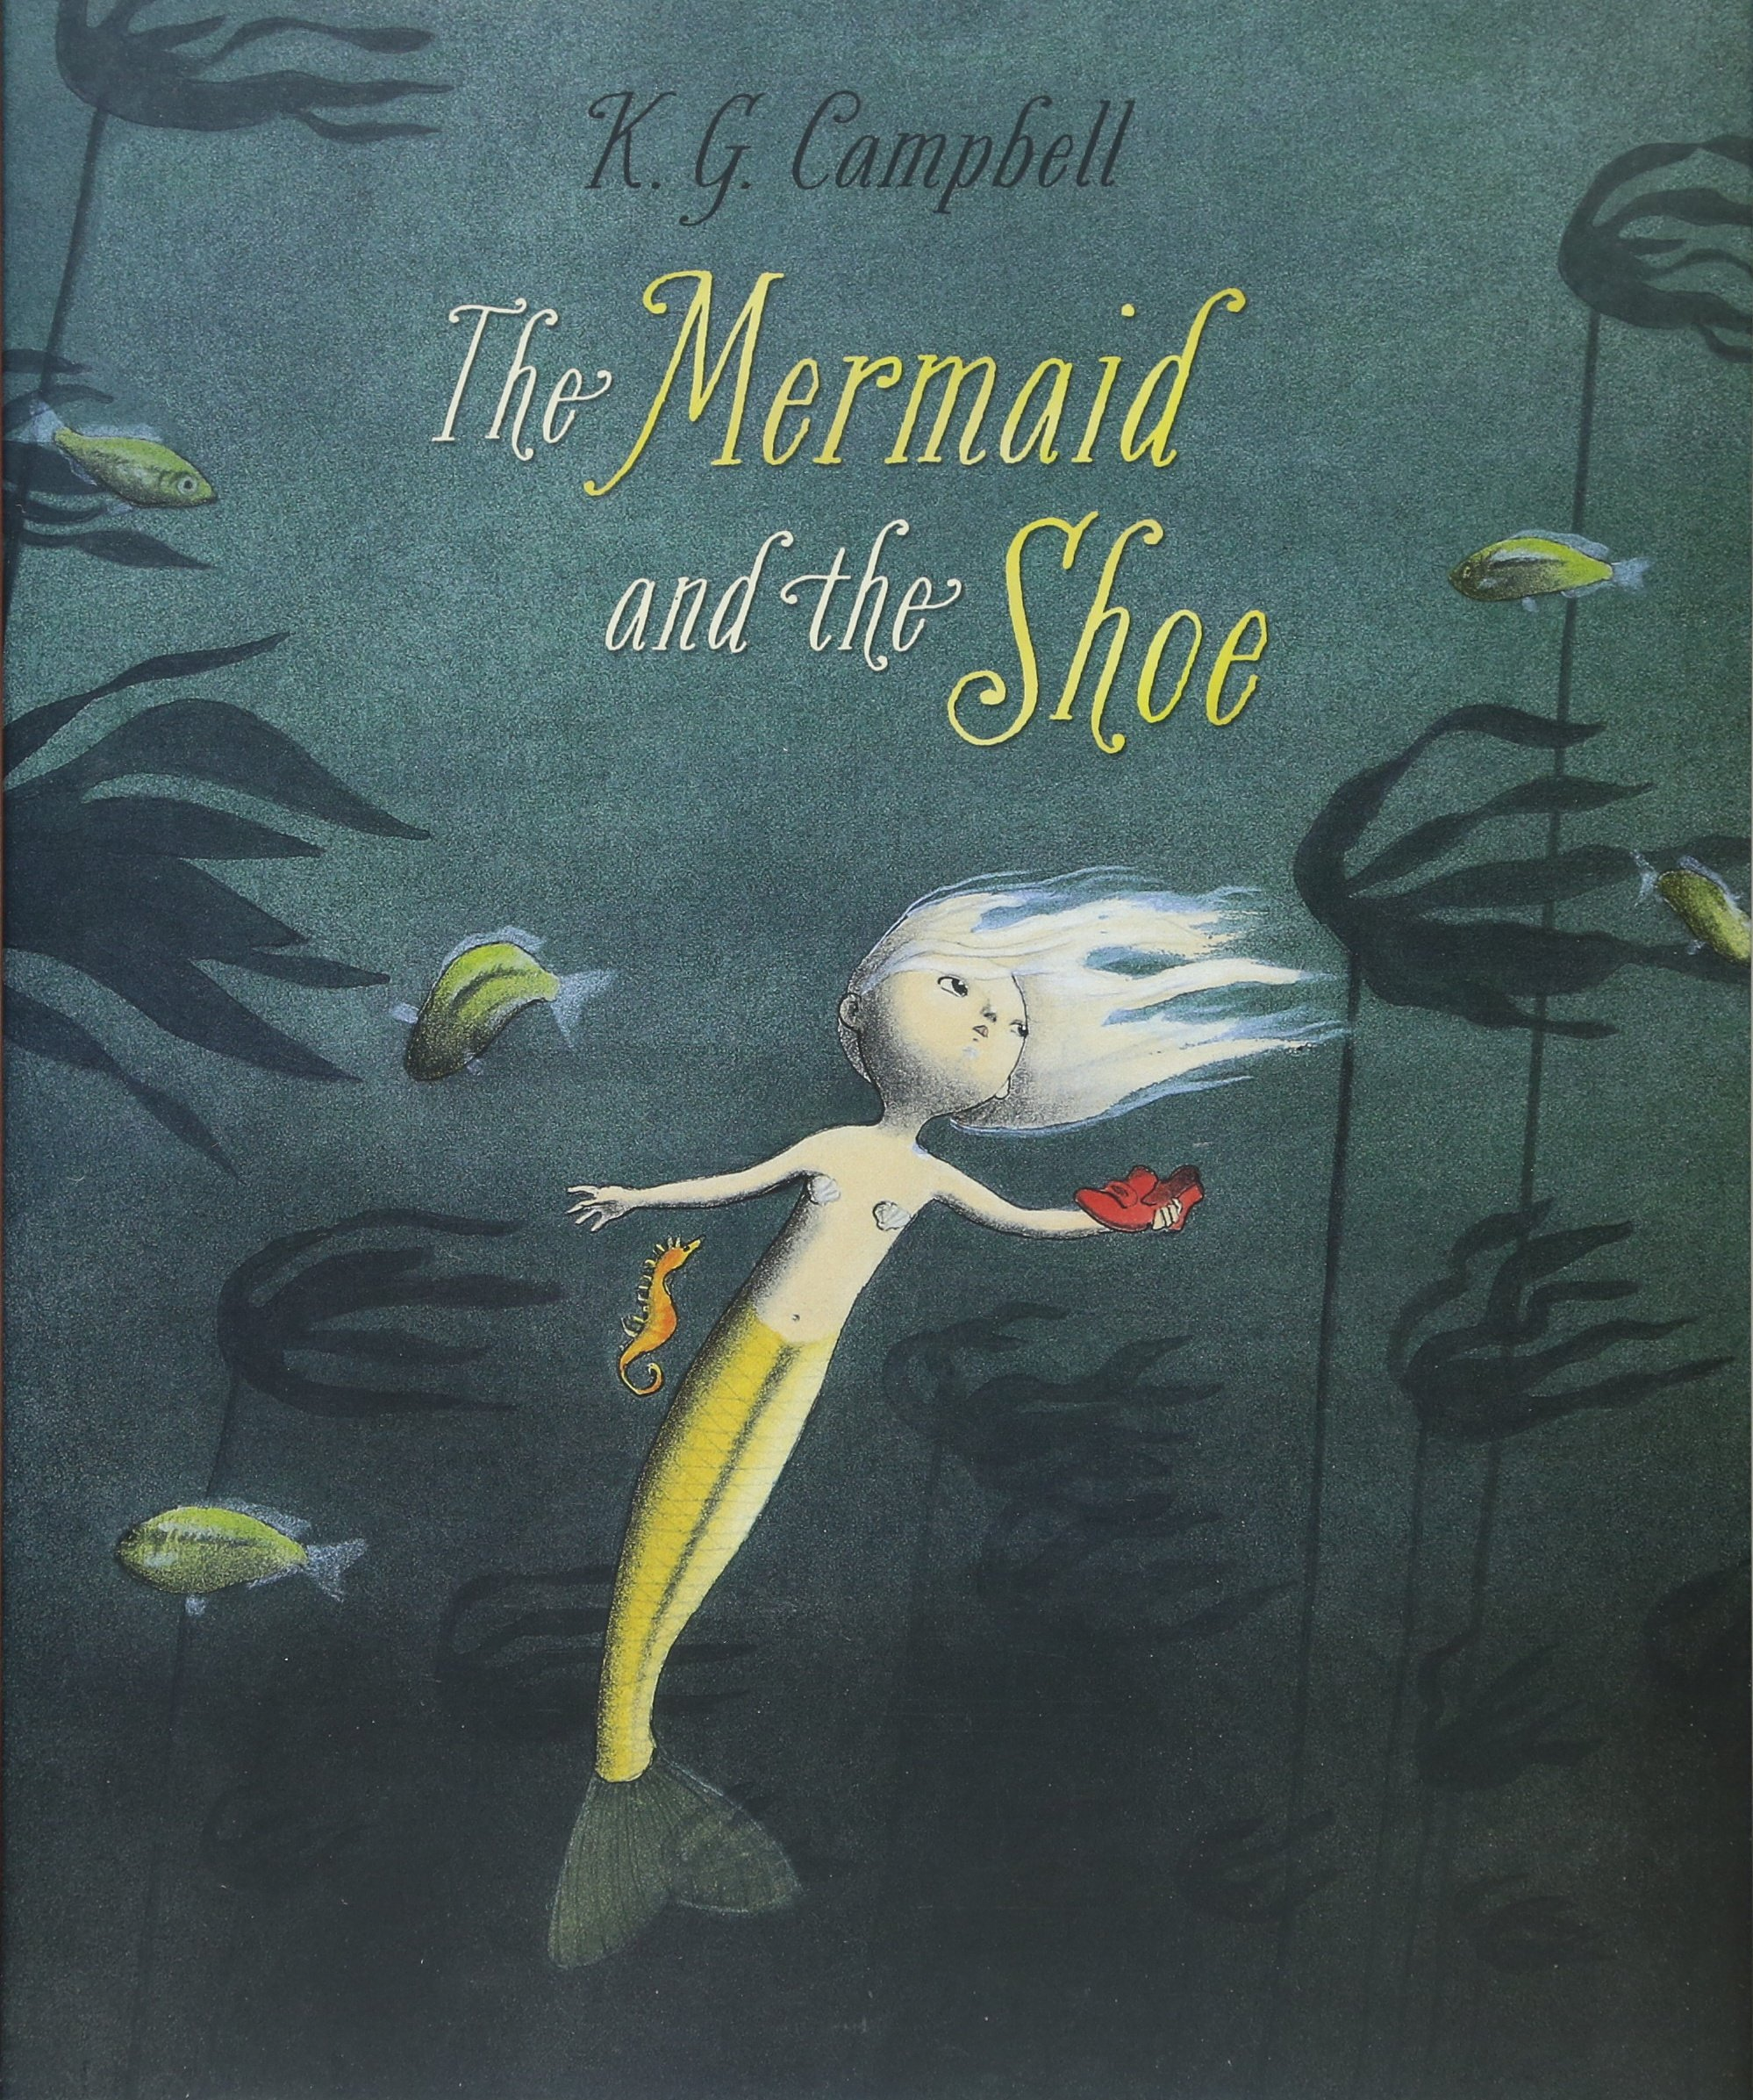 The Mermaid And The Shoe K G Campbell 9781554537716 Books